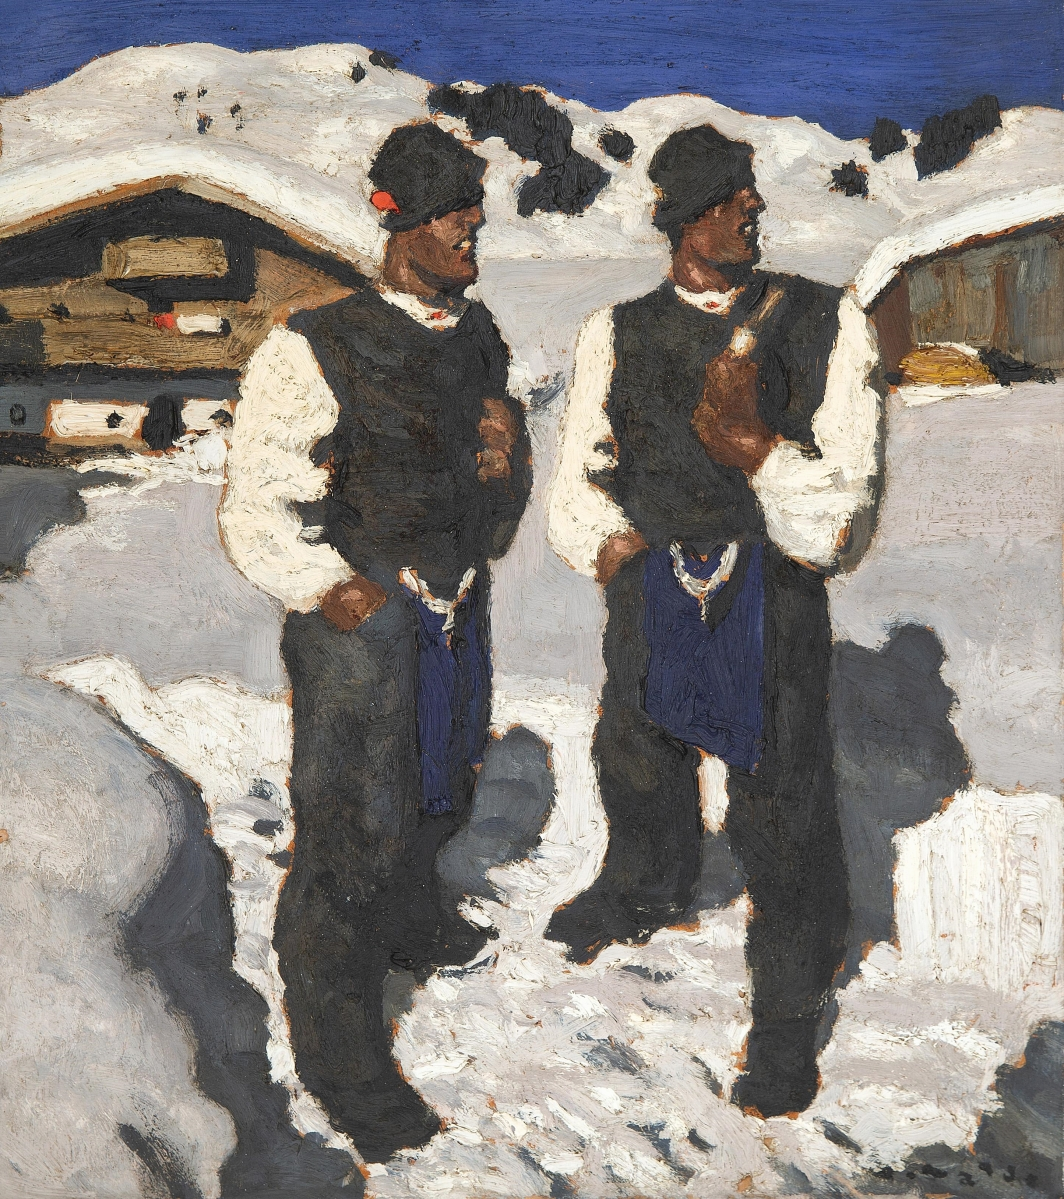 """Leading the sale and selling within estimate was Alfons Walde's (Austrian, 1891-1958) """"Bauernsonntag,"""" which sold to a buyer in Austria for $275,000 ($200/300,000)."""